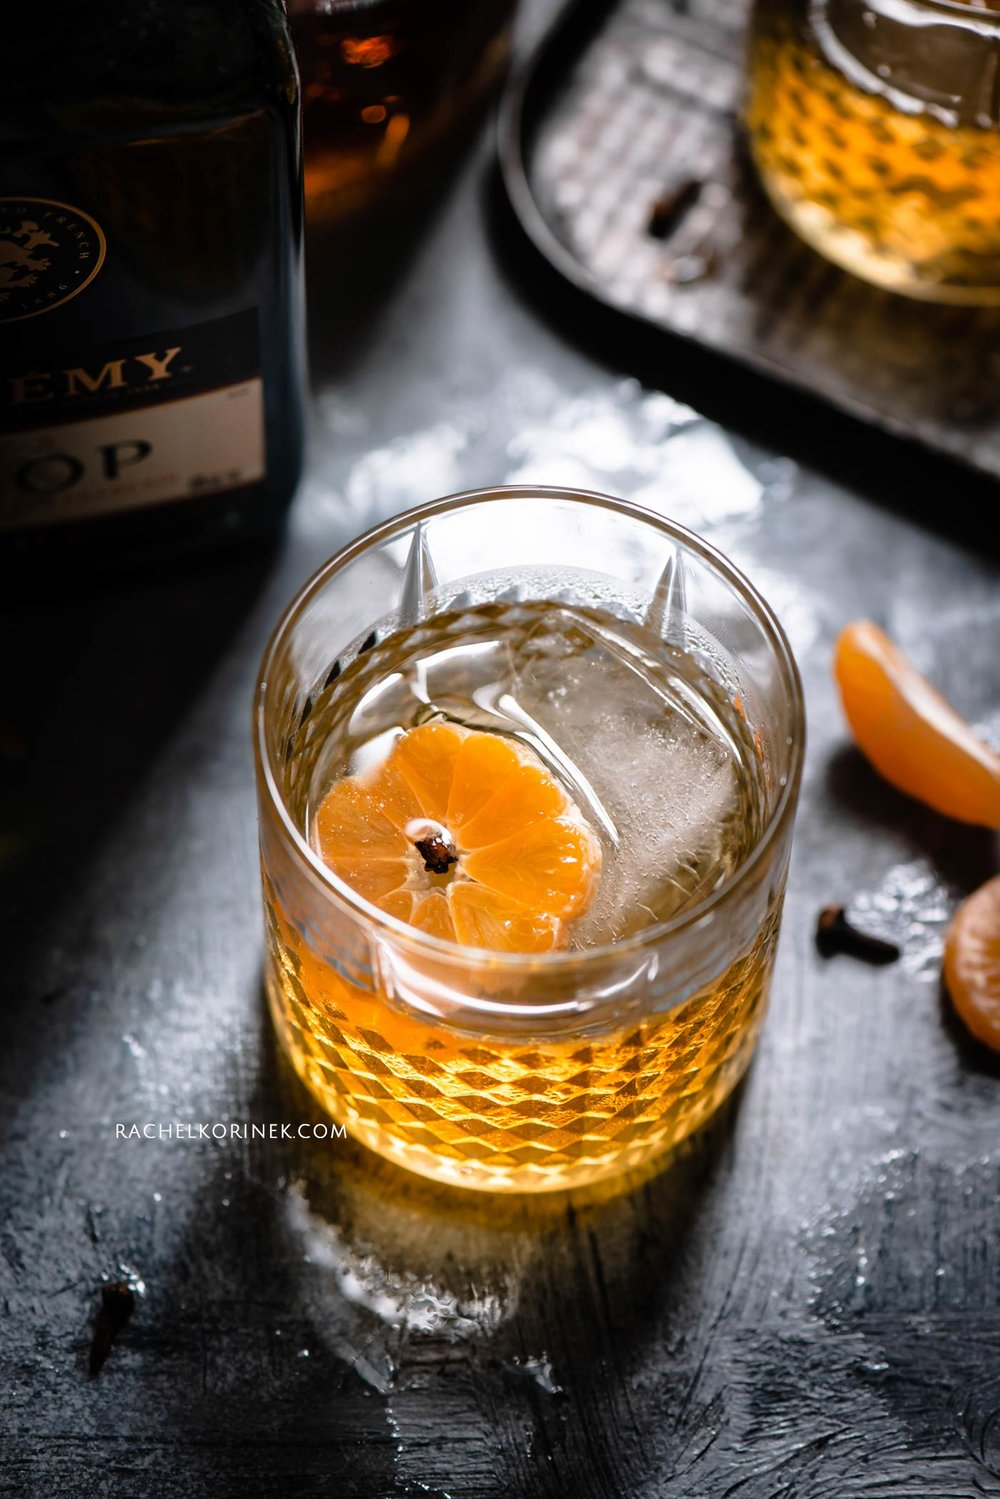 Rachel Korinek | Food Photographer Whiskey Sour with Satsuma Juice